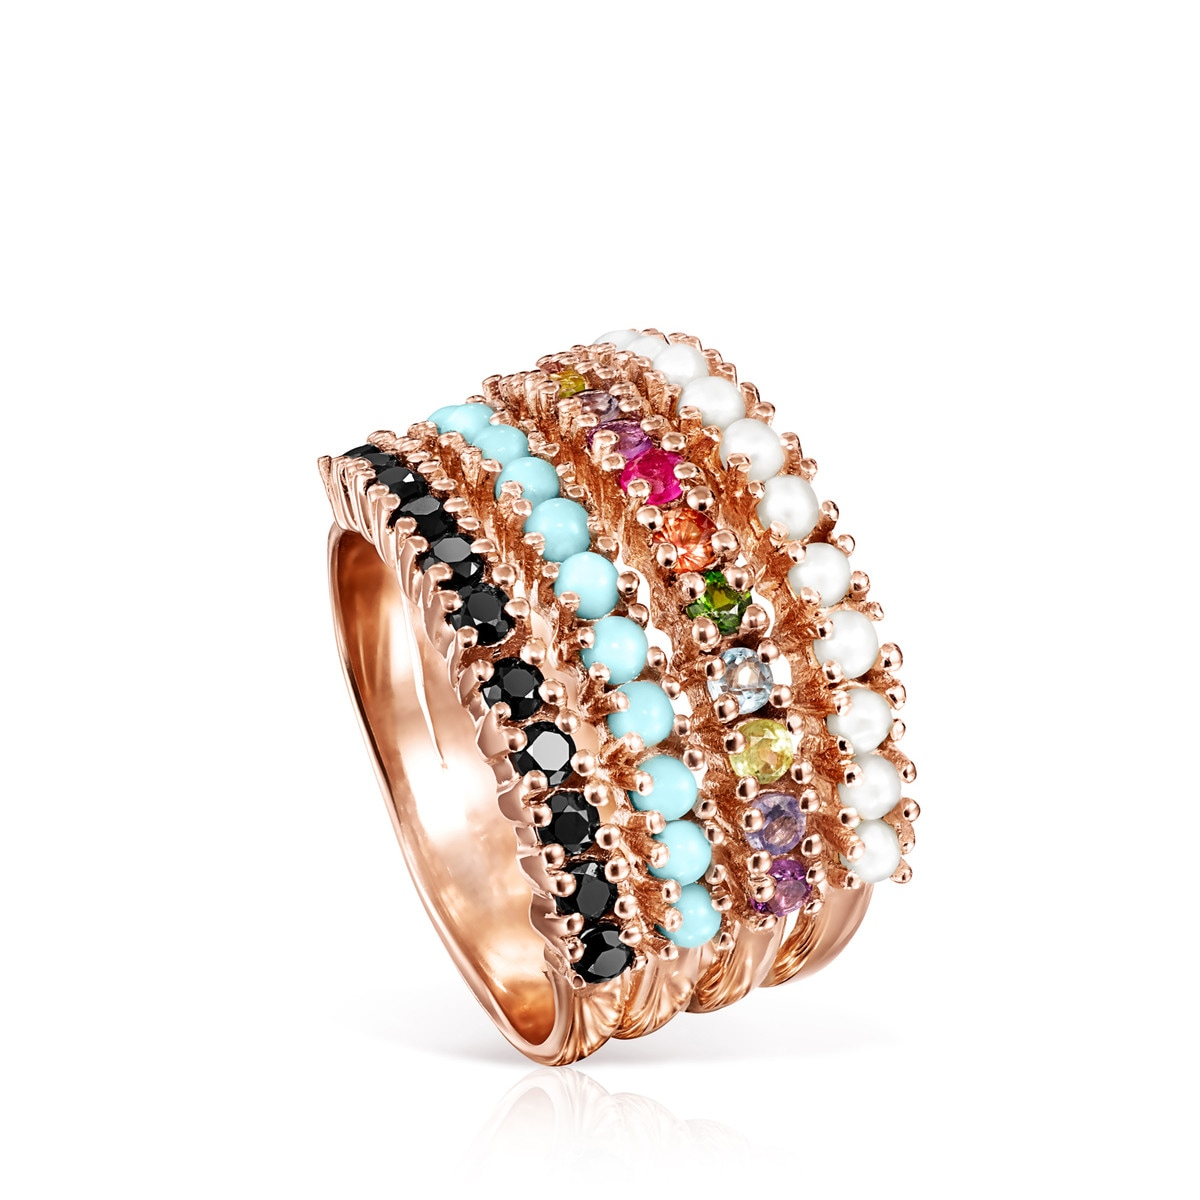 Straight Ring in Rose Silver Vermeil with Gemstones